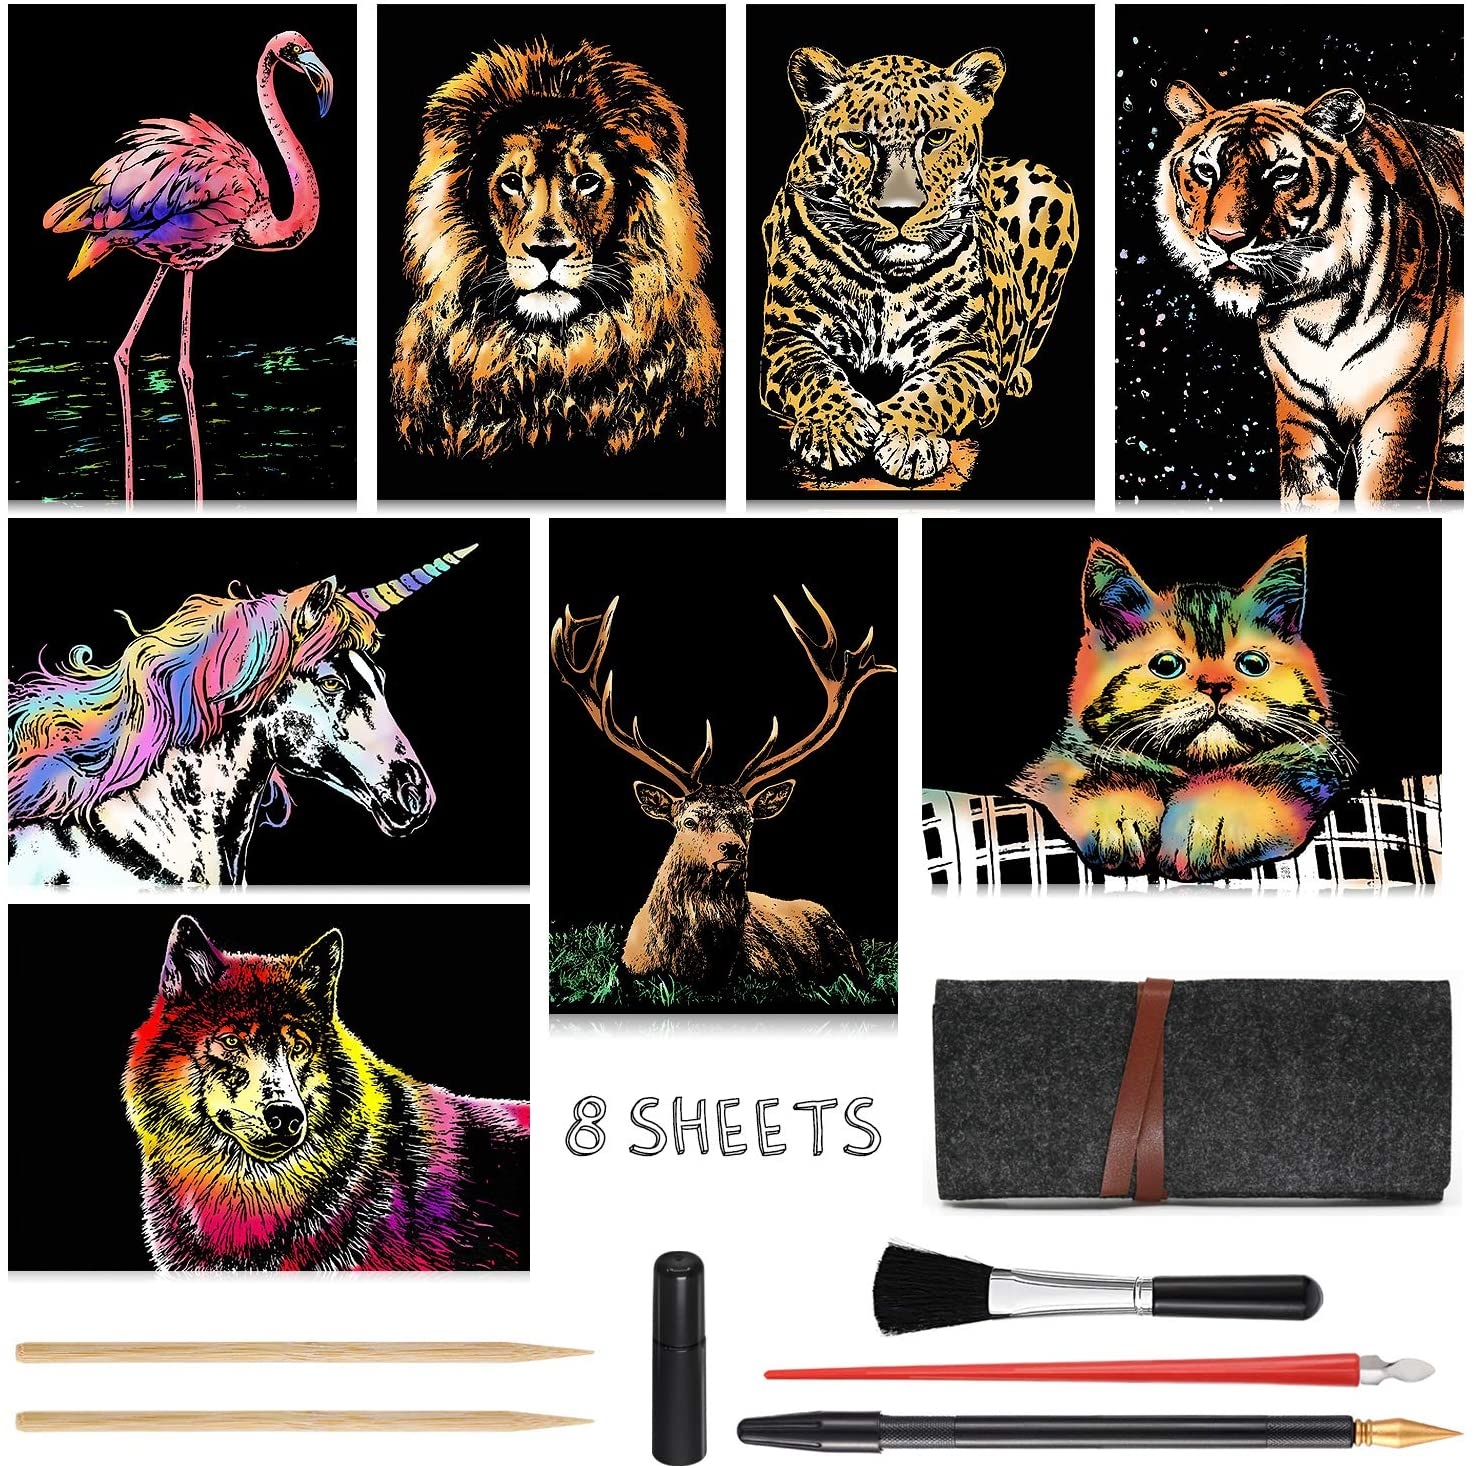 Scratch Art for Kids & Adults, Rainbow Painting Night View Scratchboard(A4), Crafts Set: 8 Sheets Scratch Cards with 6 tools in Bag - Unicorn/Flamingo/Cat/Deer/Lion/Tiger/Leopard/Wolf (Animal Series)